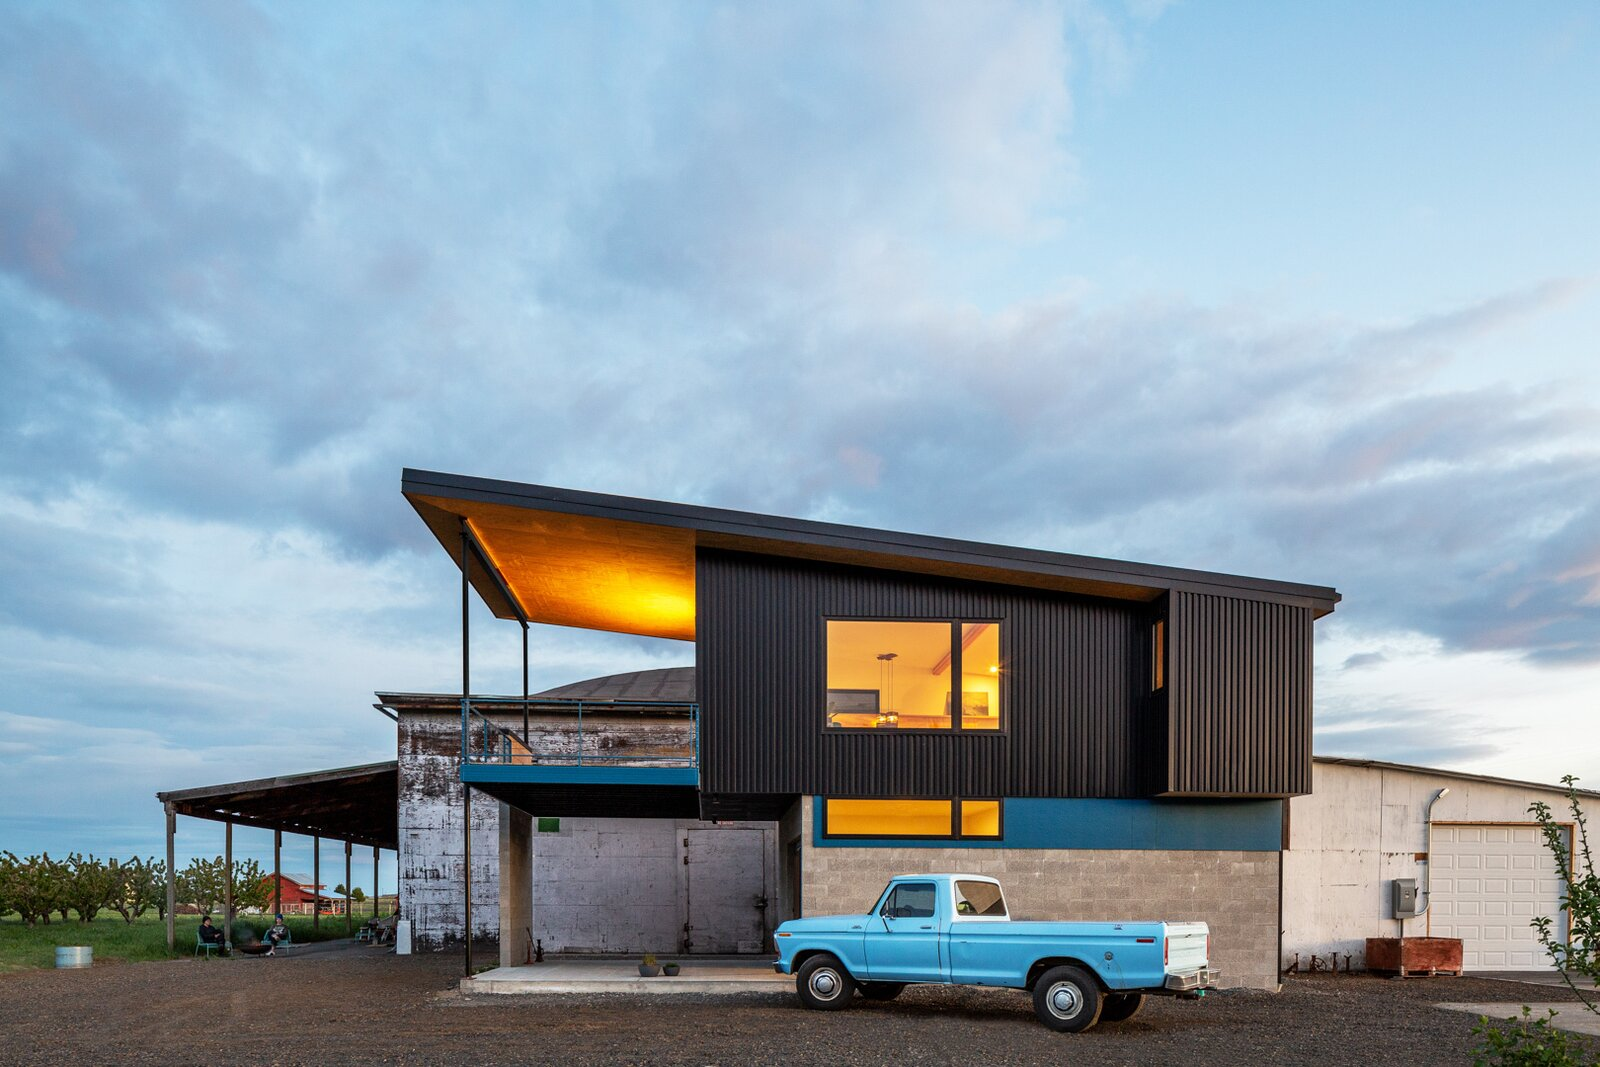 Exterior, Shed RoofLine, Metal Siding Material, Metal Roof Material, House Building Type, and Concrete Siding Material  Photo 2 of 25 in An Industrial-Style Home Rises Next to a Derelict Apple-Processing Warehouse